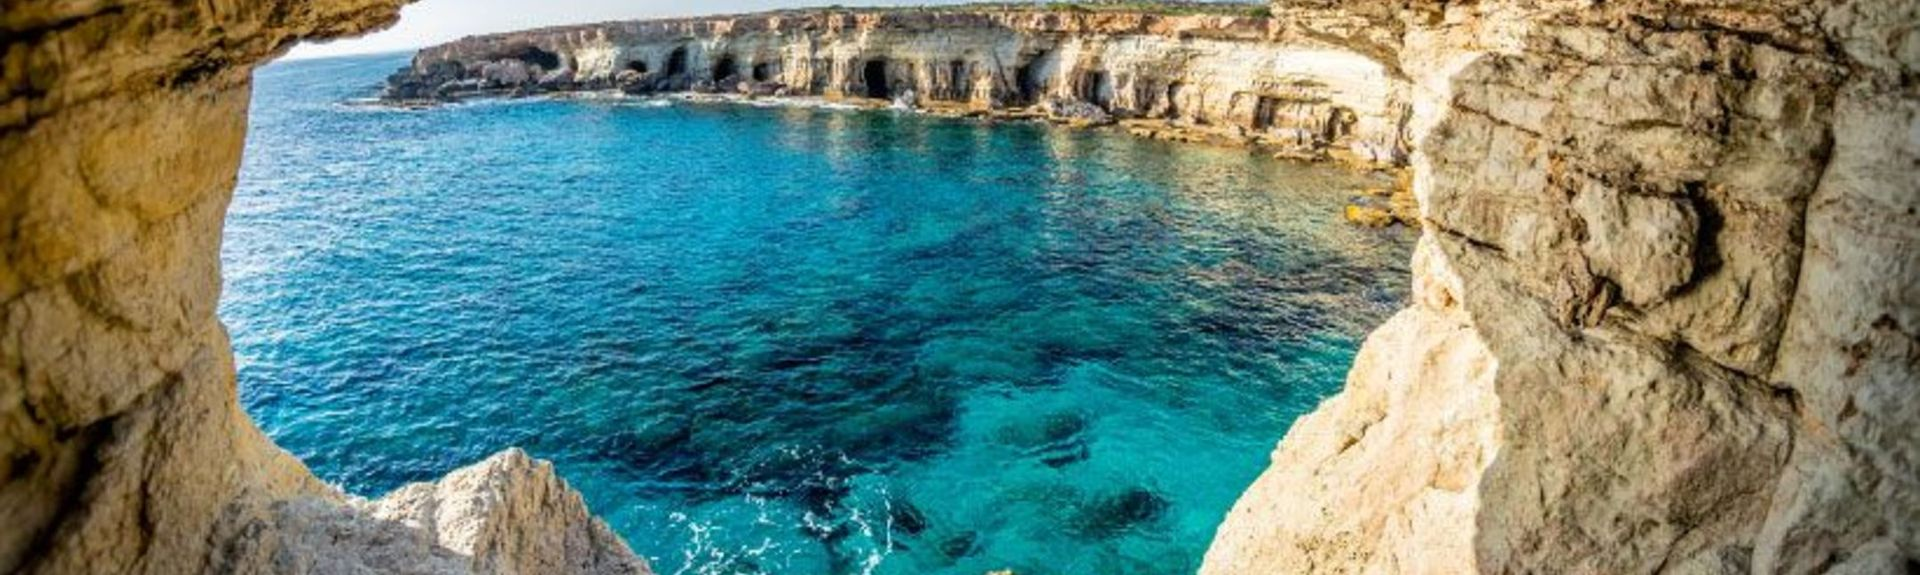 Cape Greco National Forest Park, Paralimni, Cyprus